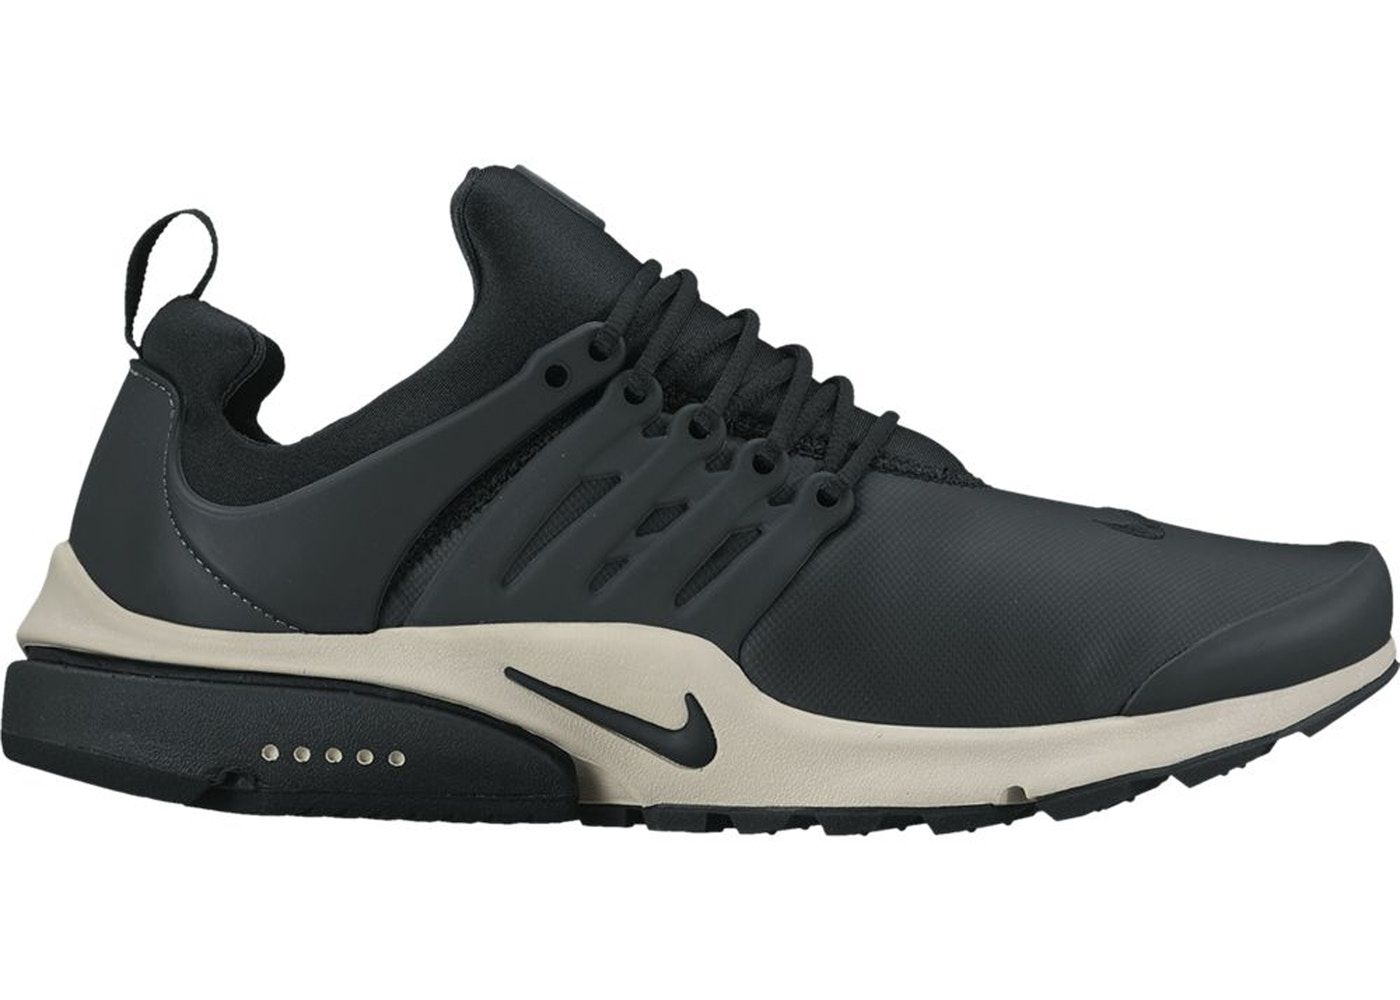 release date a8fec a4fa9 Air Presto Low Utility Black Light Bone